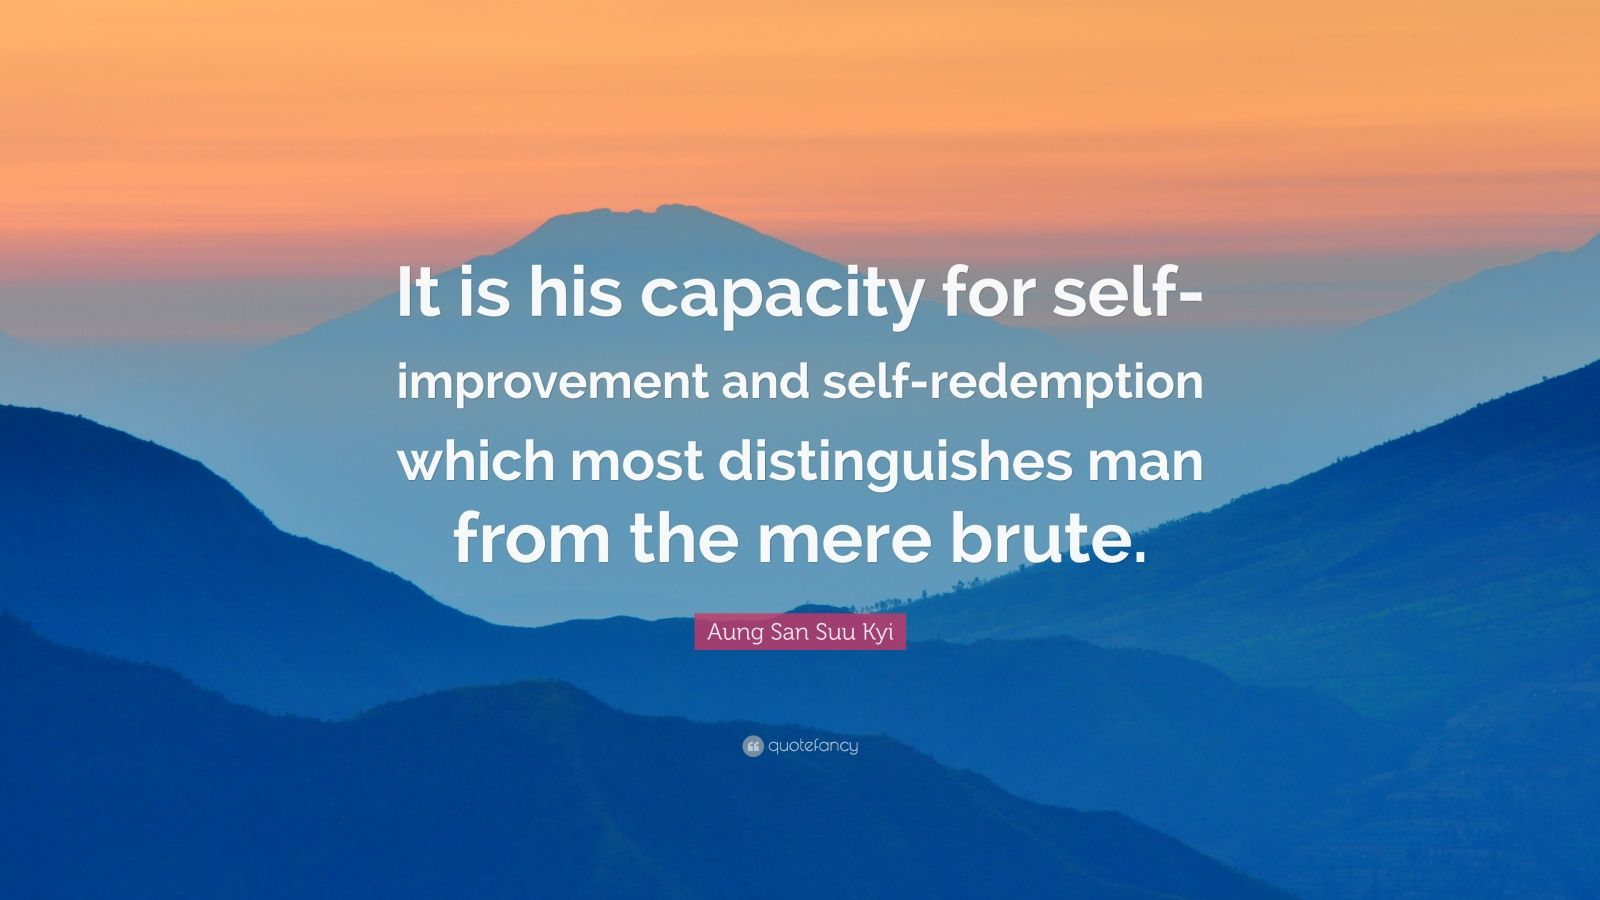 """Aung San Suu Kyi Quote: """"It is his capacity for self-improvement and self-redemption which most distinguishes man from the mere brute."""""""